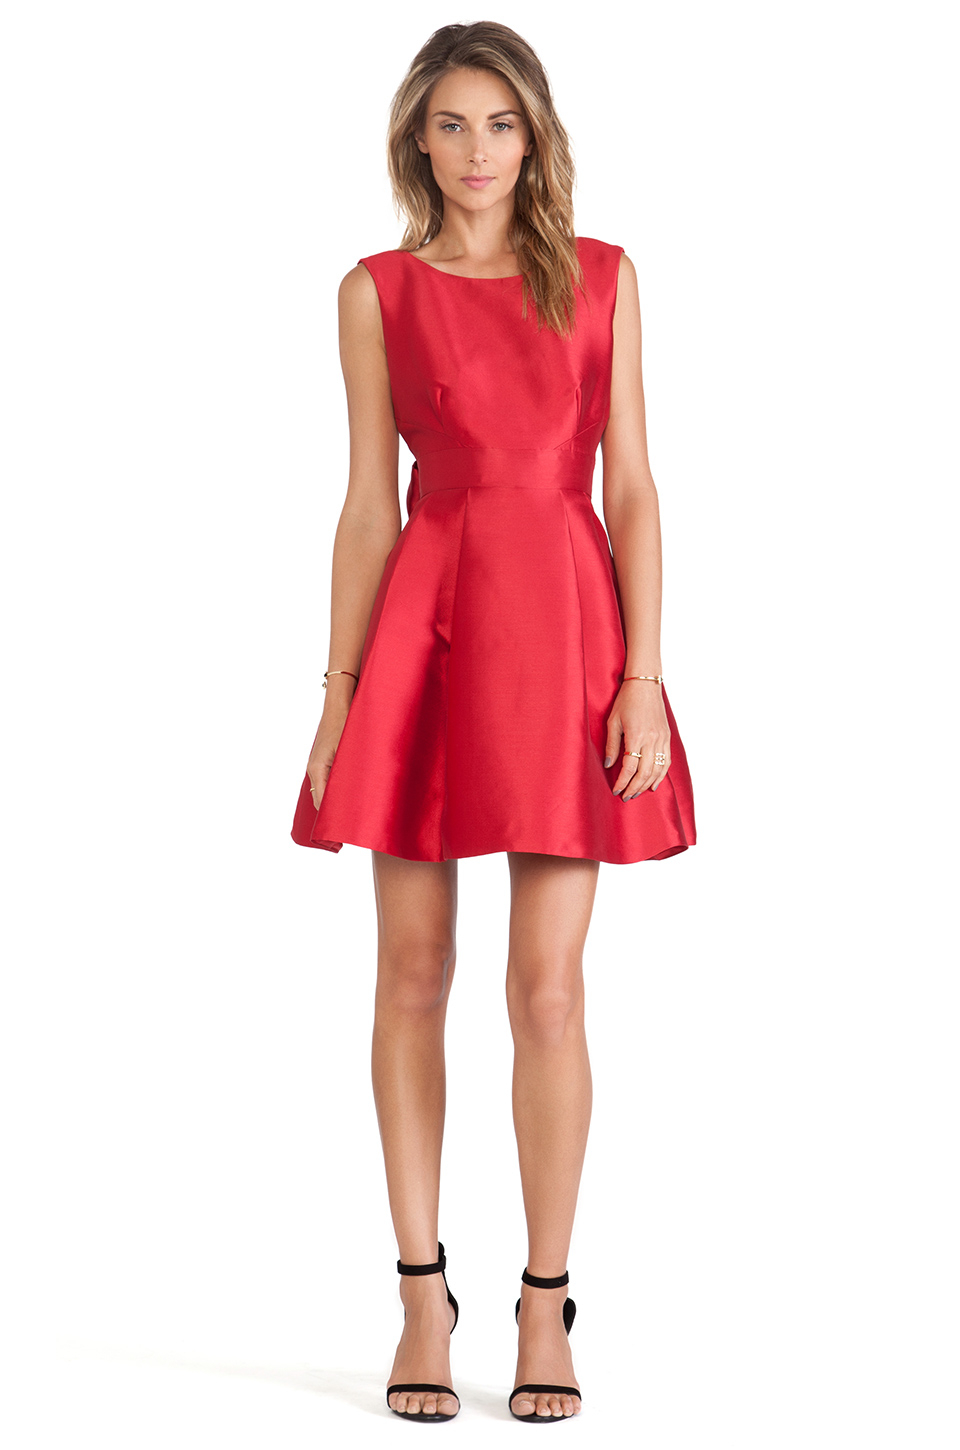 bd3f5652c9d Kate Spade Backless Bow Mini Dress in Red - Lyst